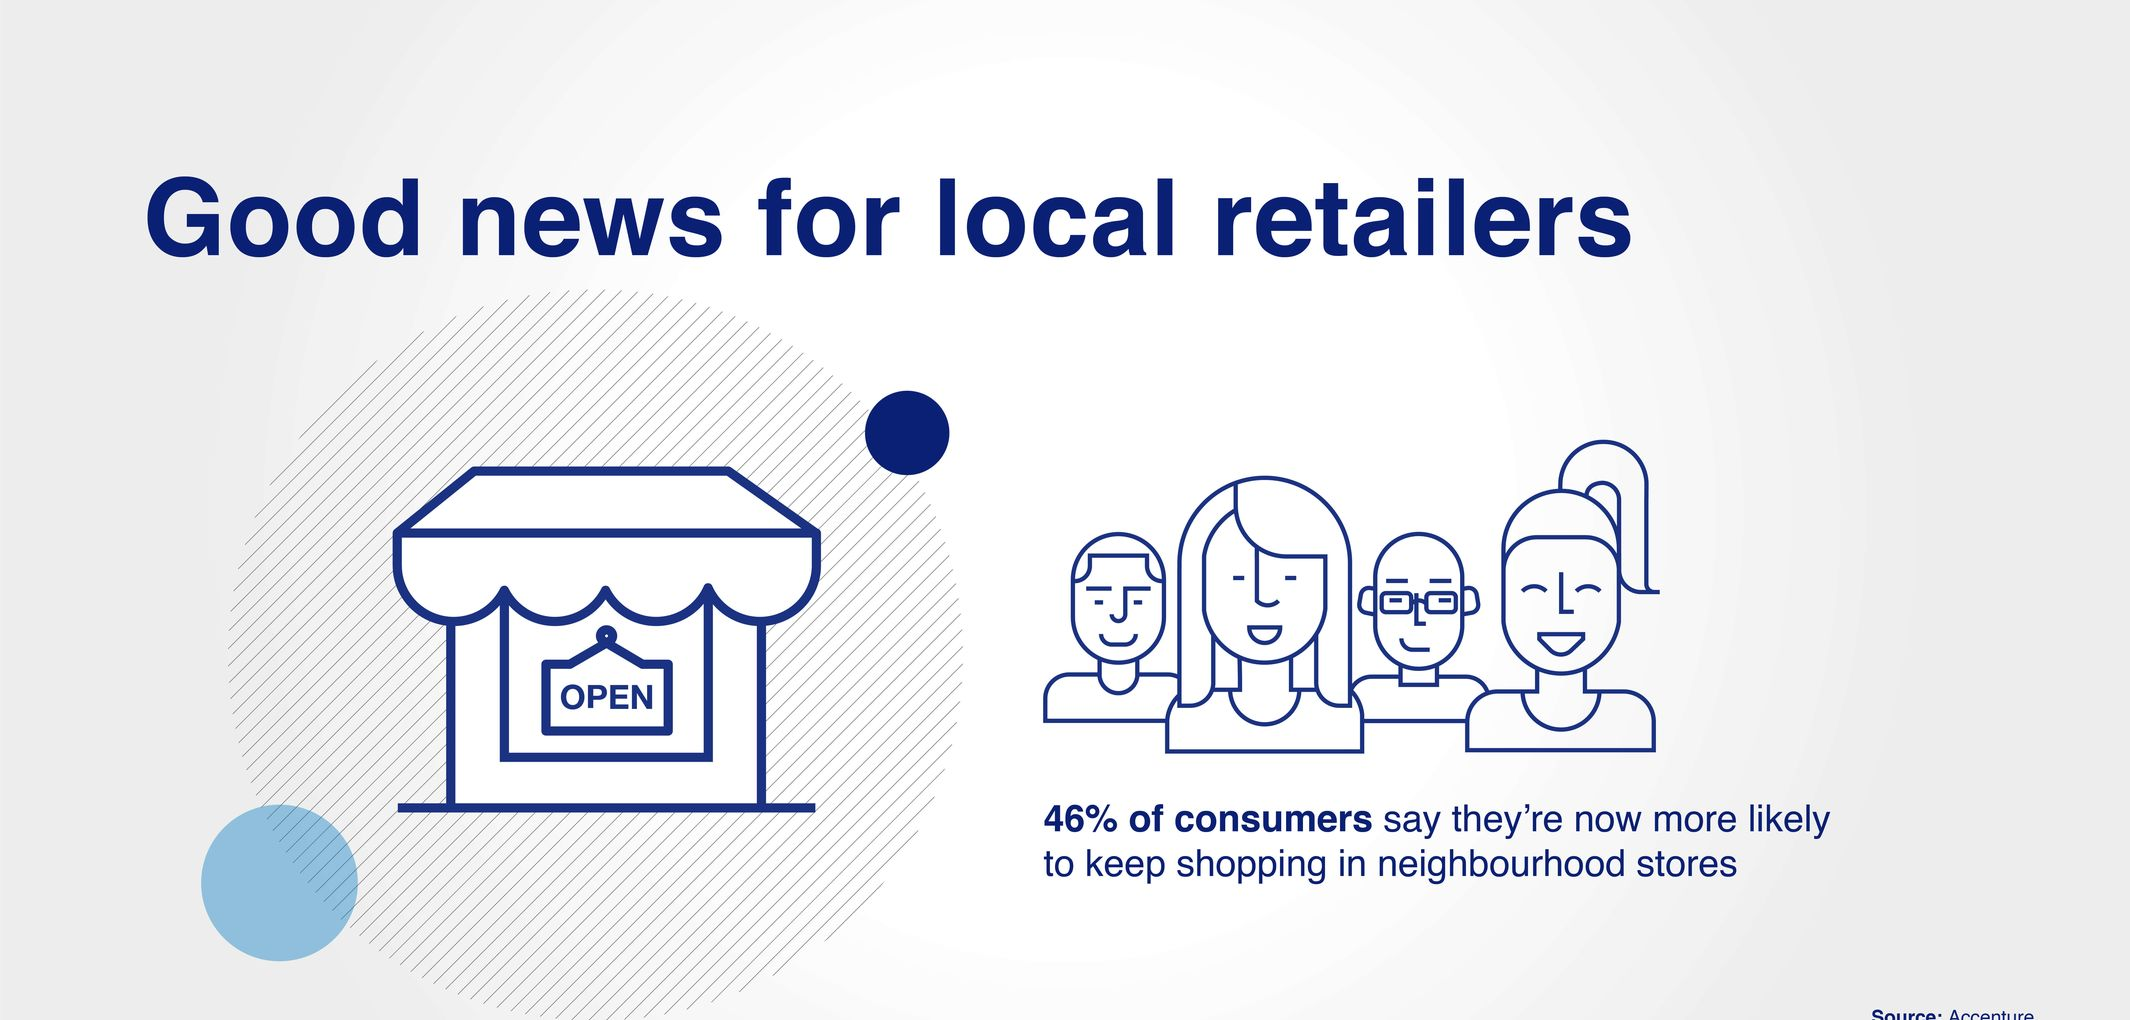 Good news for local retailers